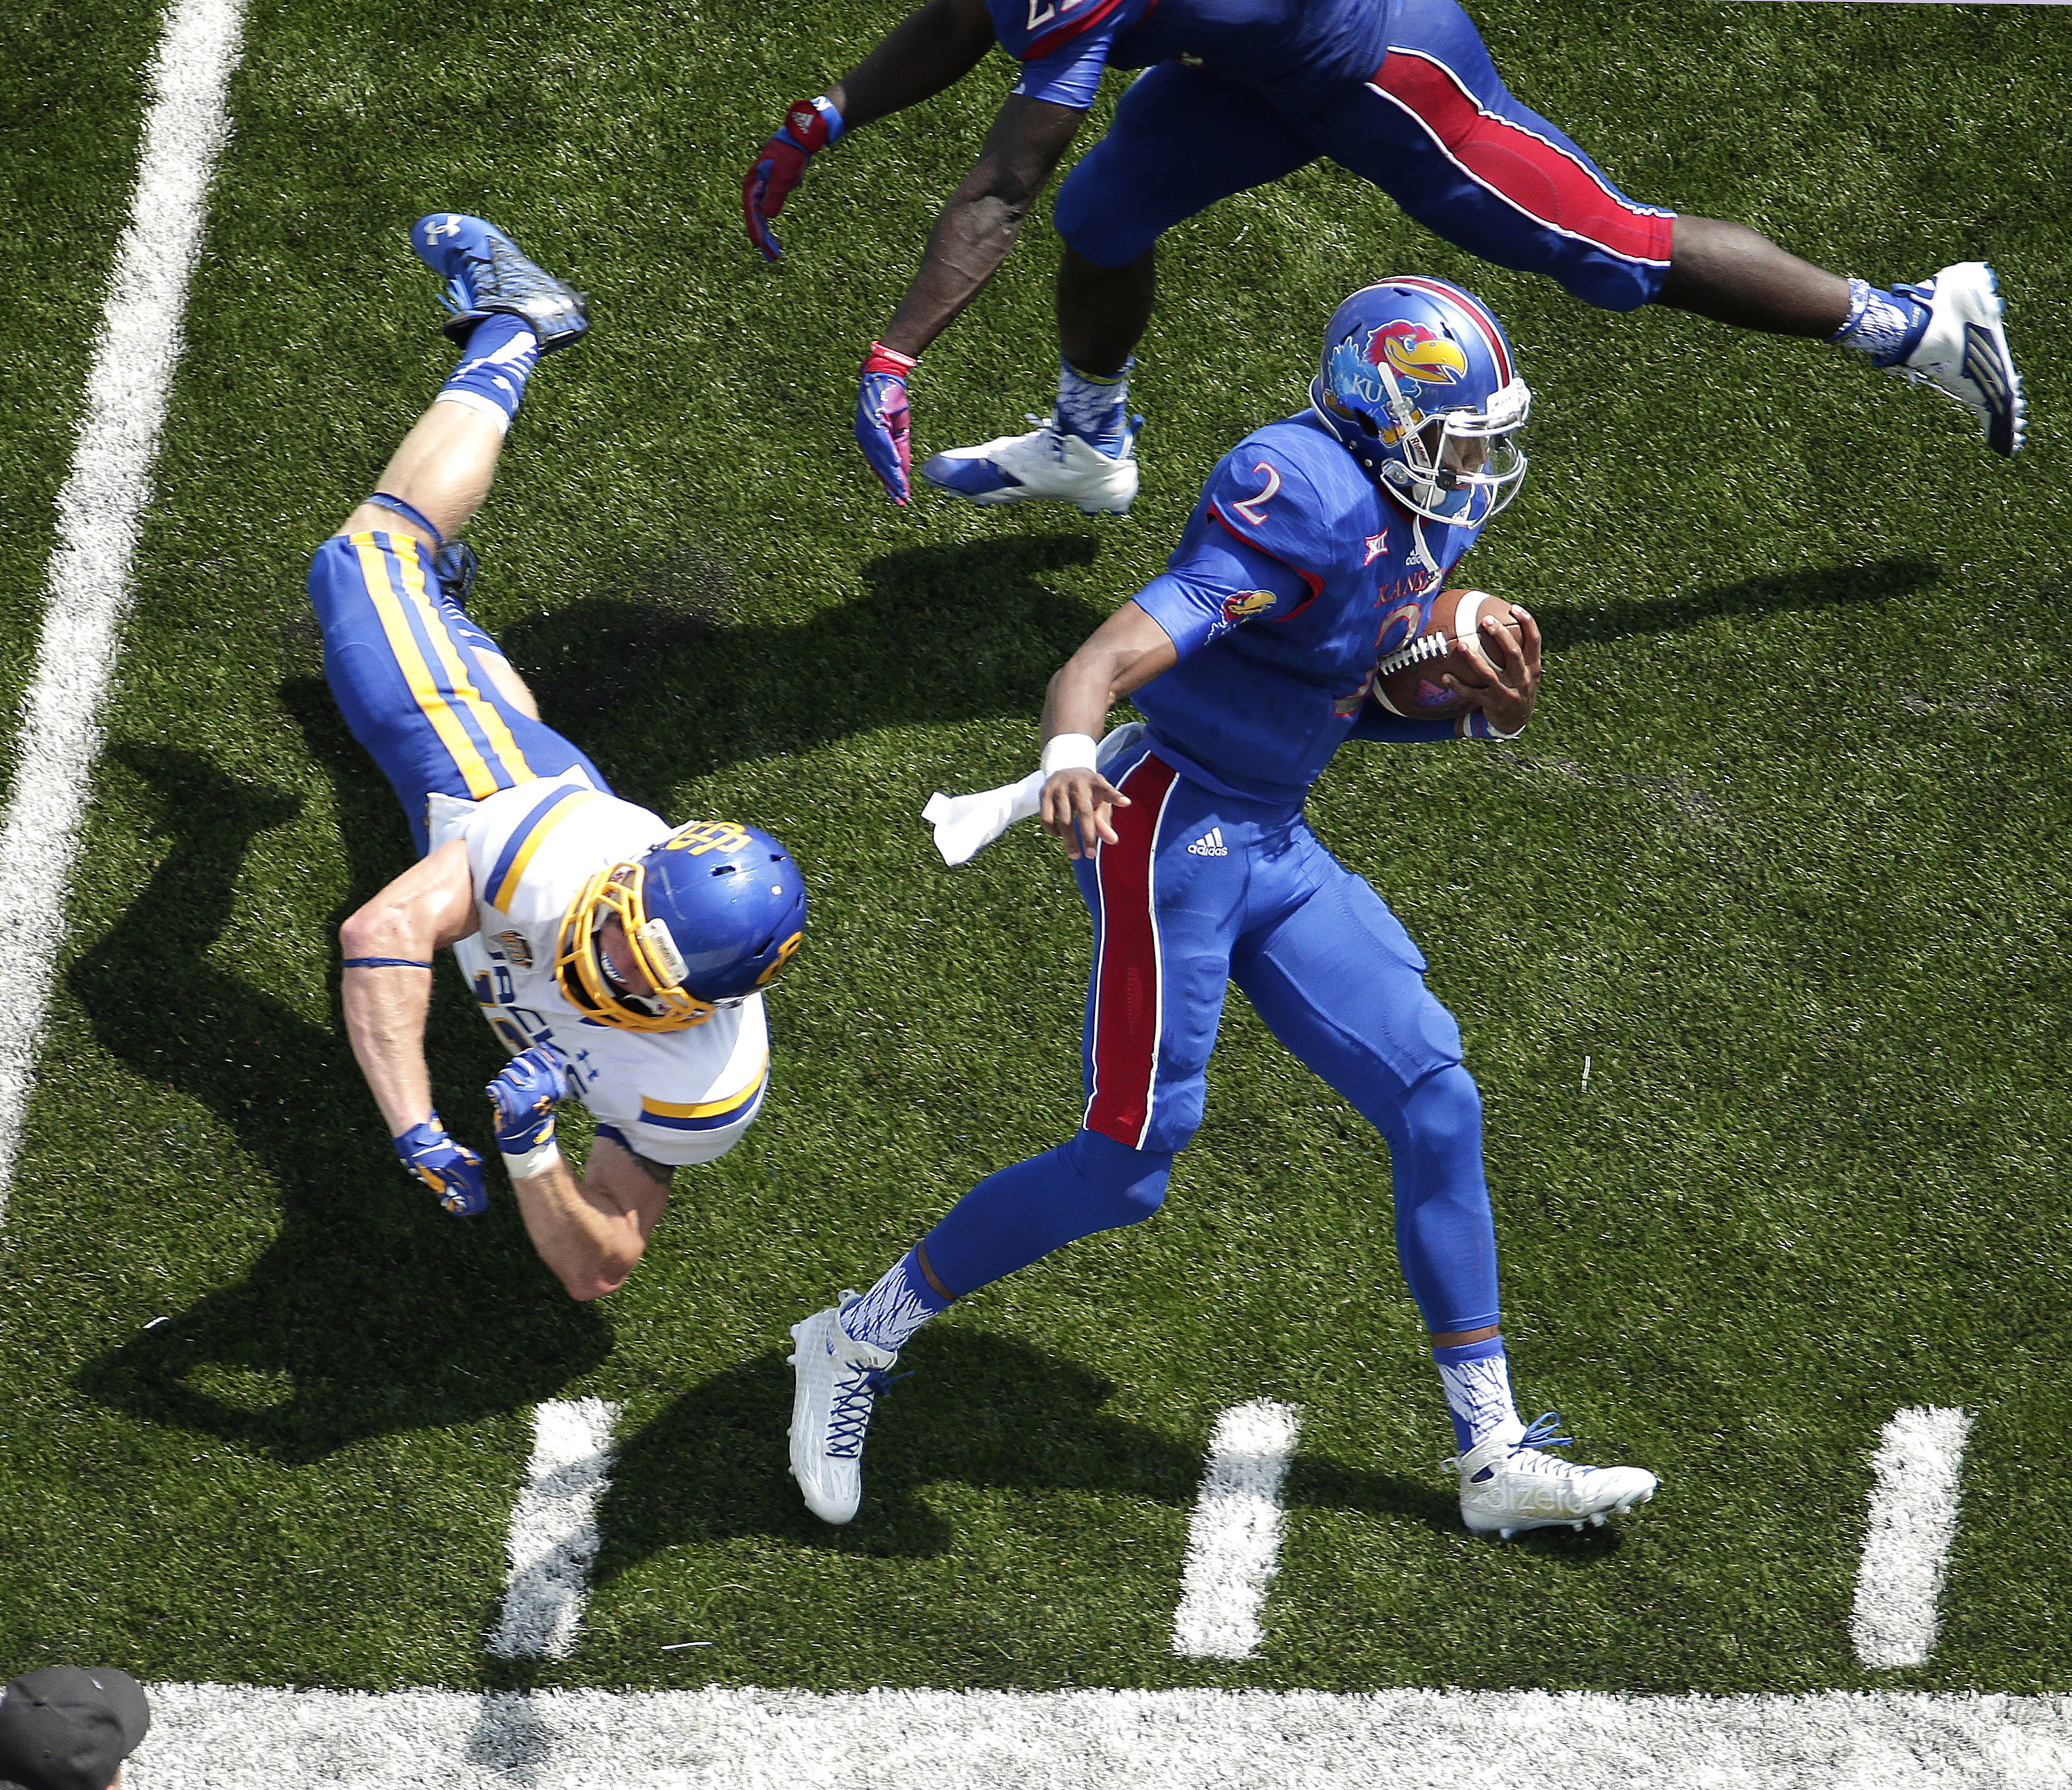 Kansas quarterback Montell Cozart (2) gets by South Dakota State linebacker Cody Hazelett (12) as he runs the ball during the first half of an NCAA college football game Saturday, Sept. 5, 2015, in Lawrence, Kan. (AP Photo/Charlie Riedel)